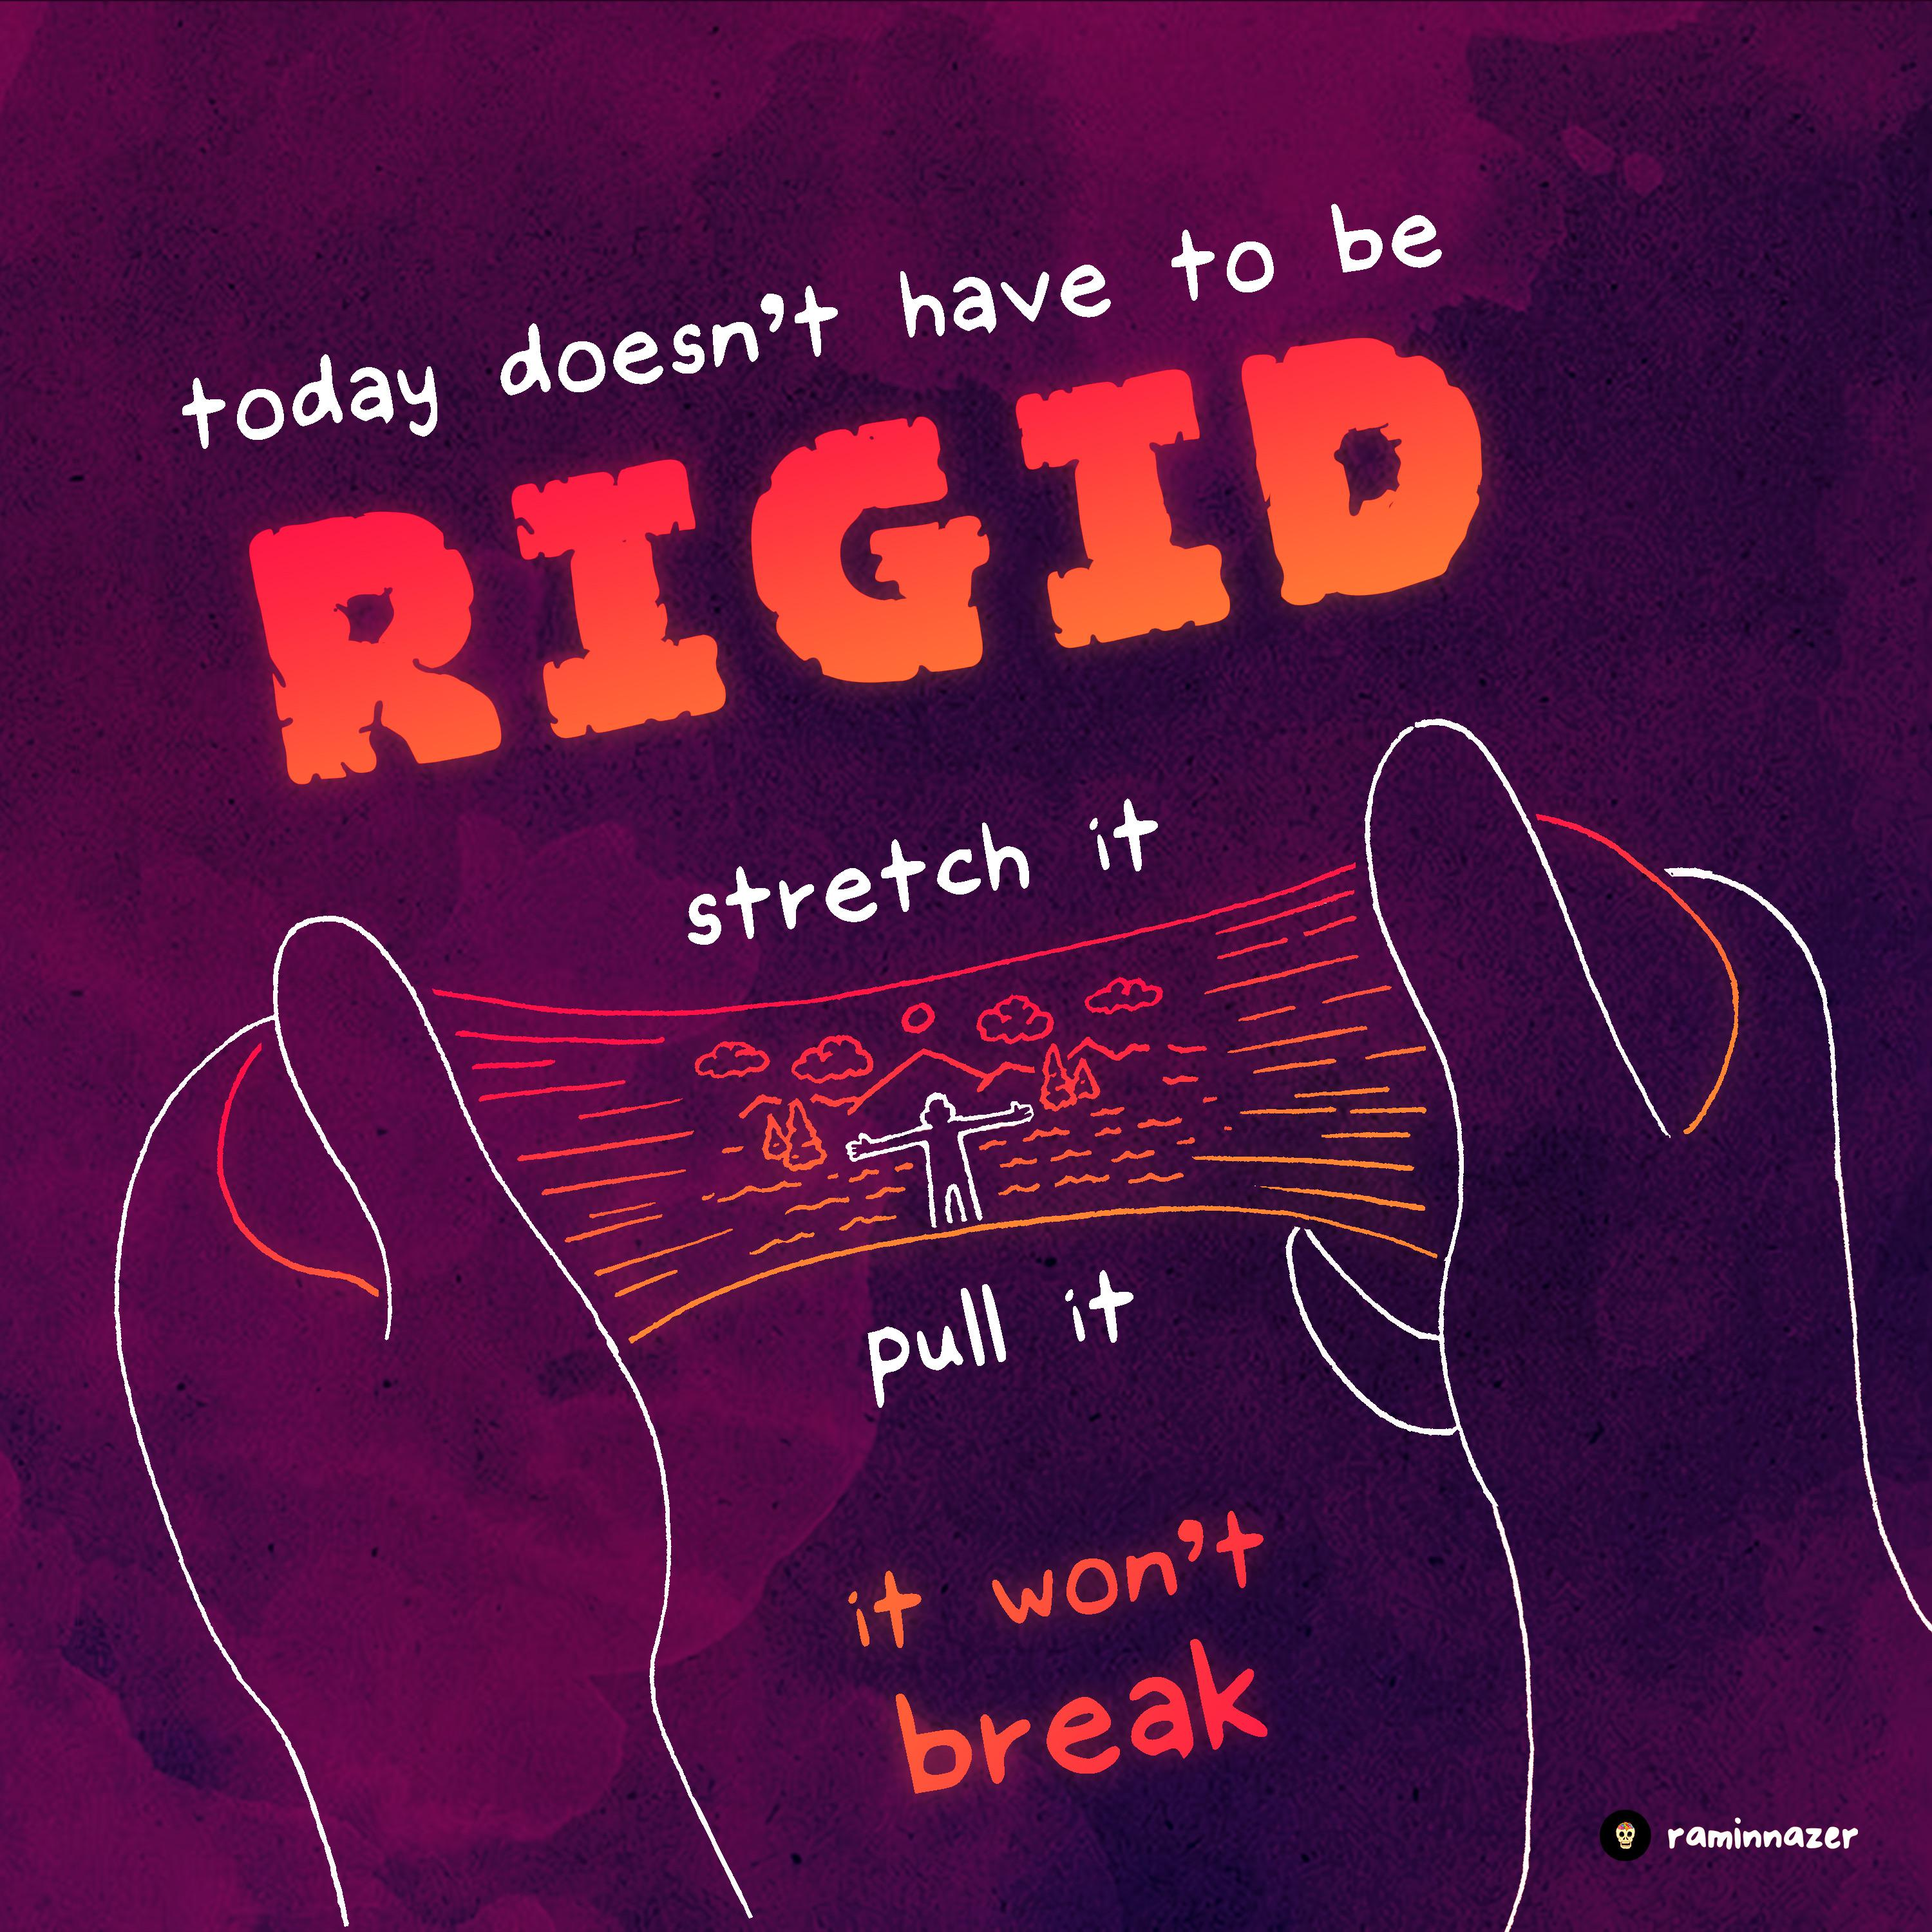 [Image] Today Doesn't Have To Be Rigid.